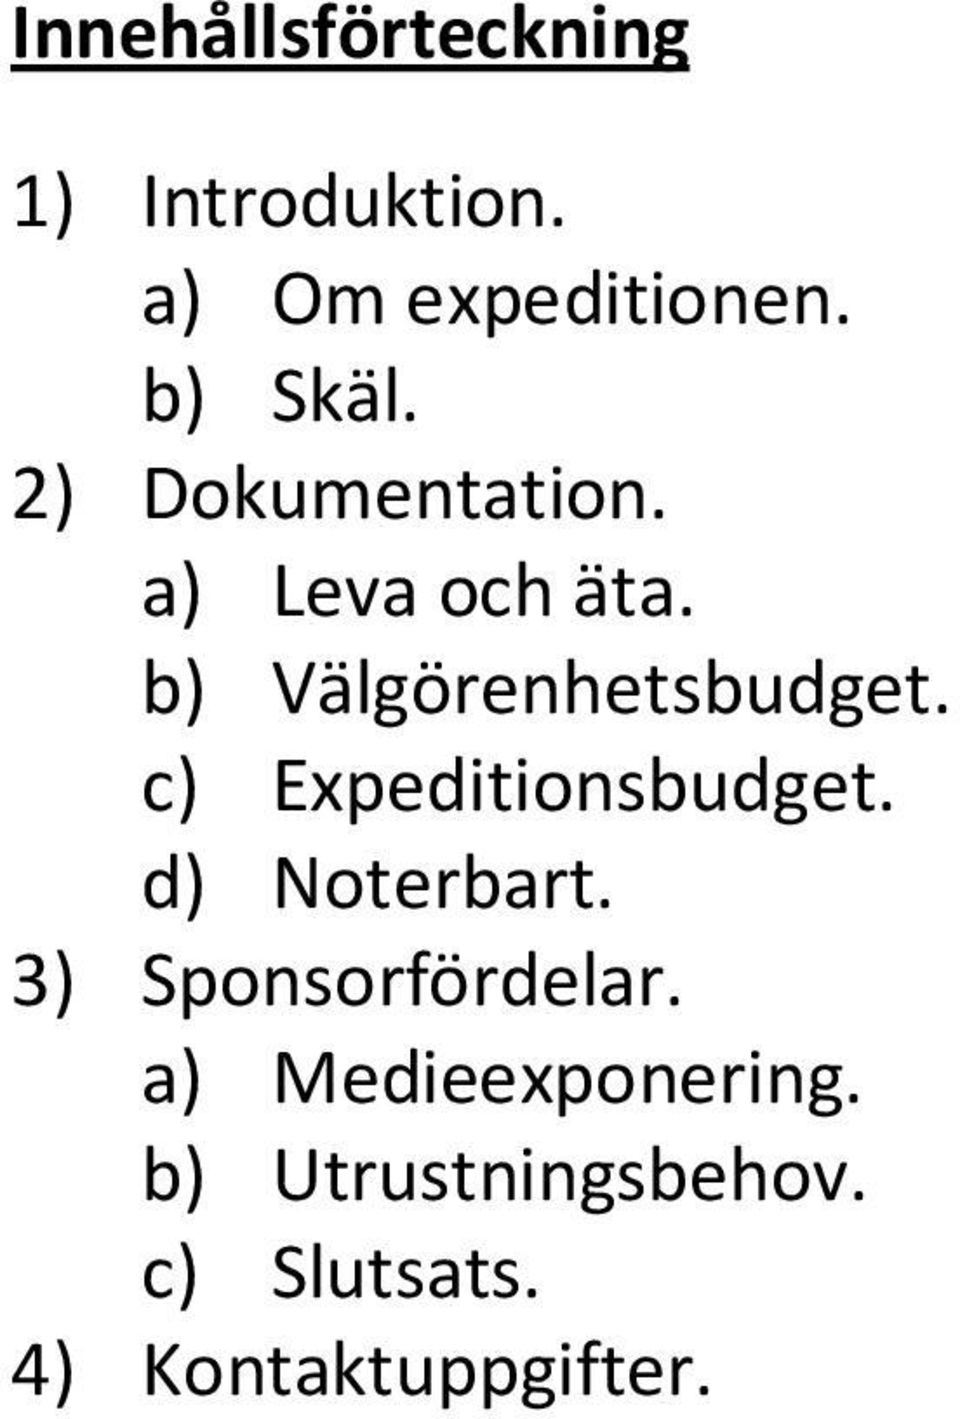 b) Välgörenhetsbudget. c) Expeditionsbudget. d) Noterbart.